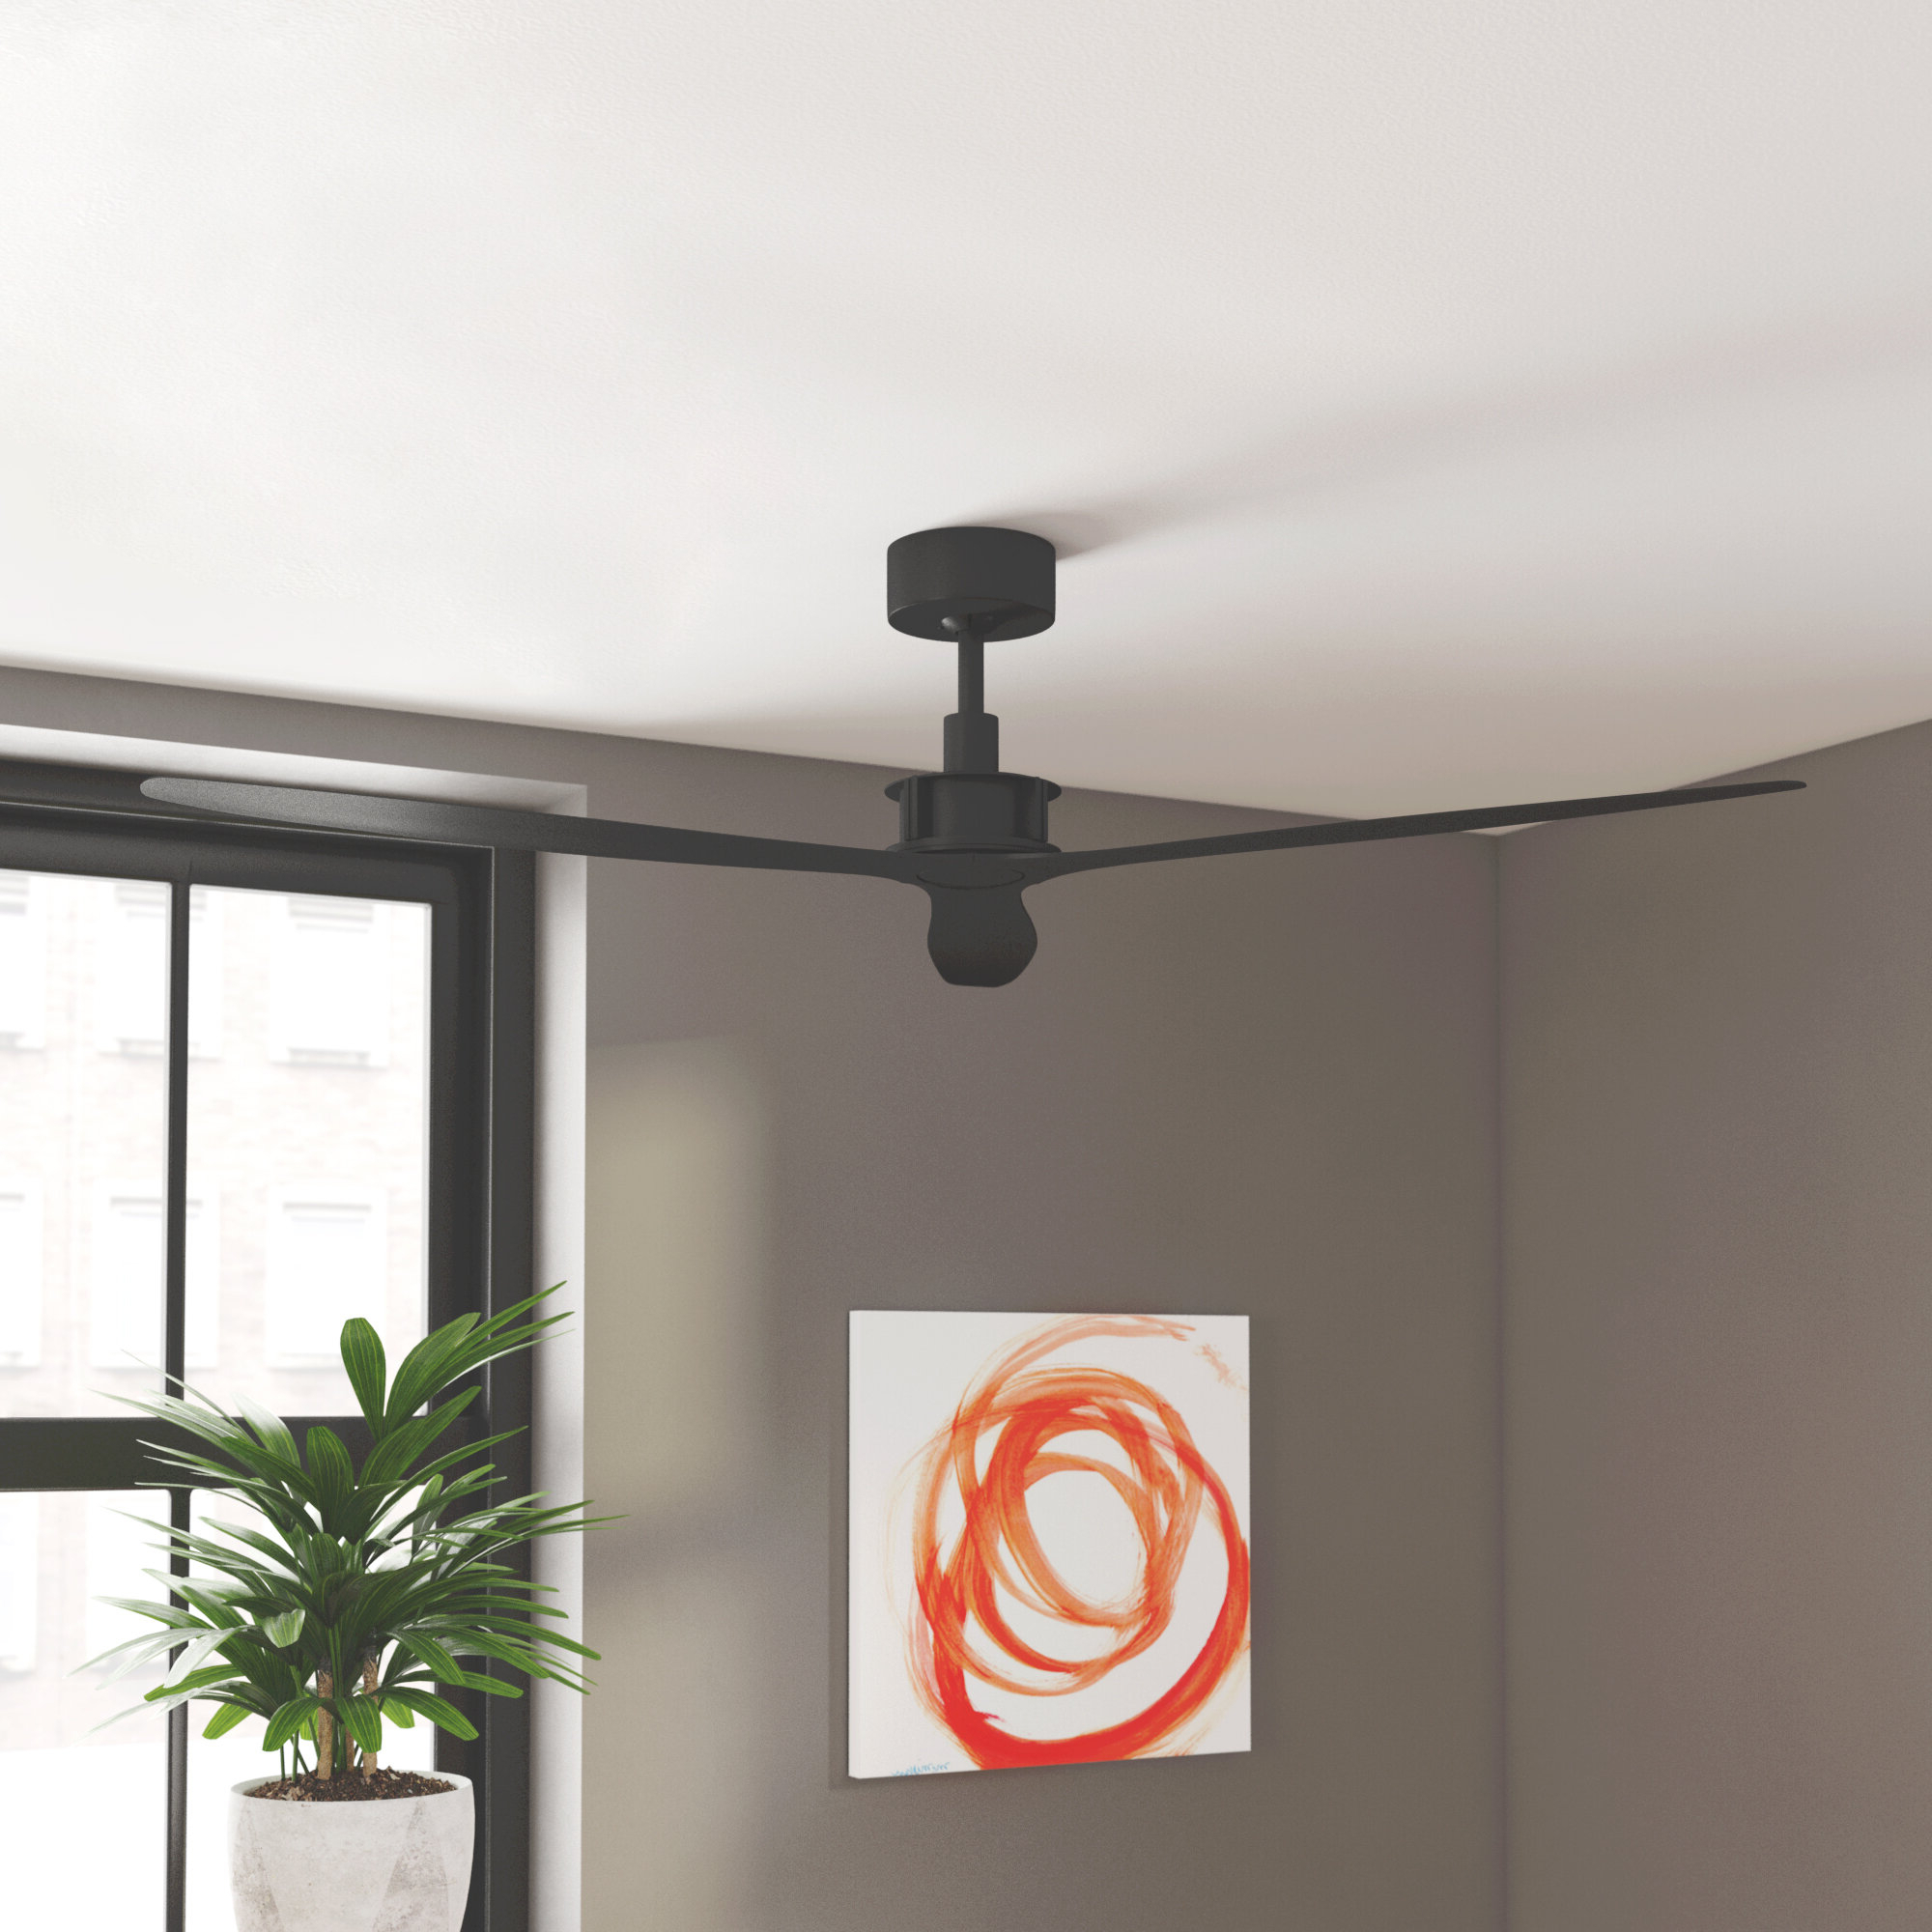 """Theron Catoe 3 Blade Ceiling Fans In Well Liked Theron 52"""" Catoe 3 Blade Ceiling Fan With Remote (View 12 of 20)"""